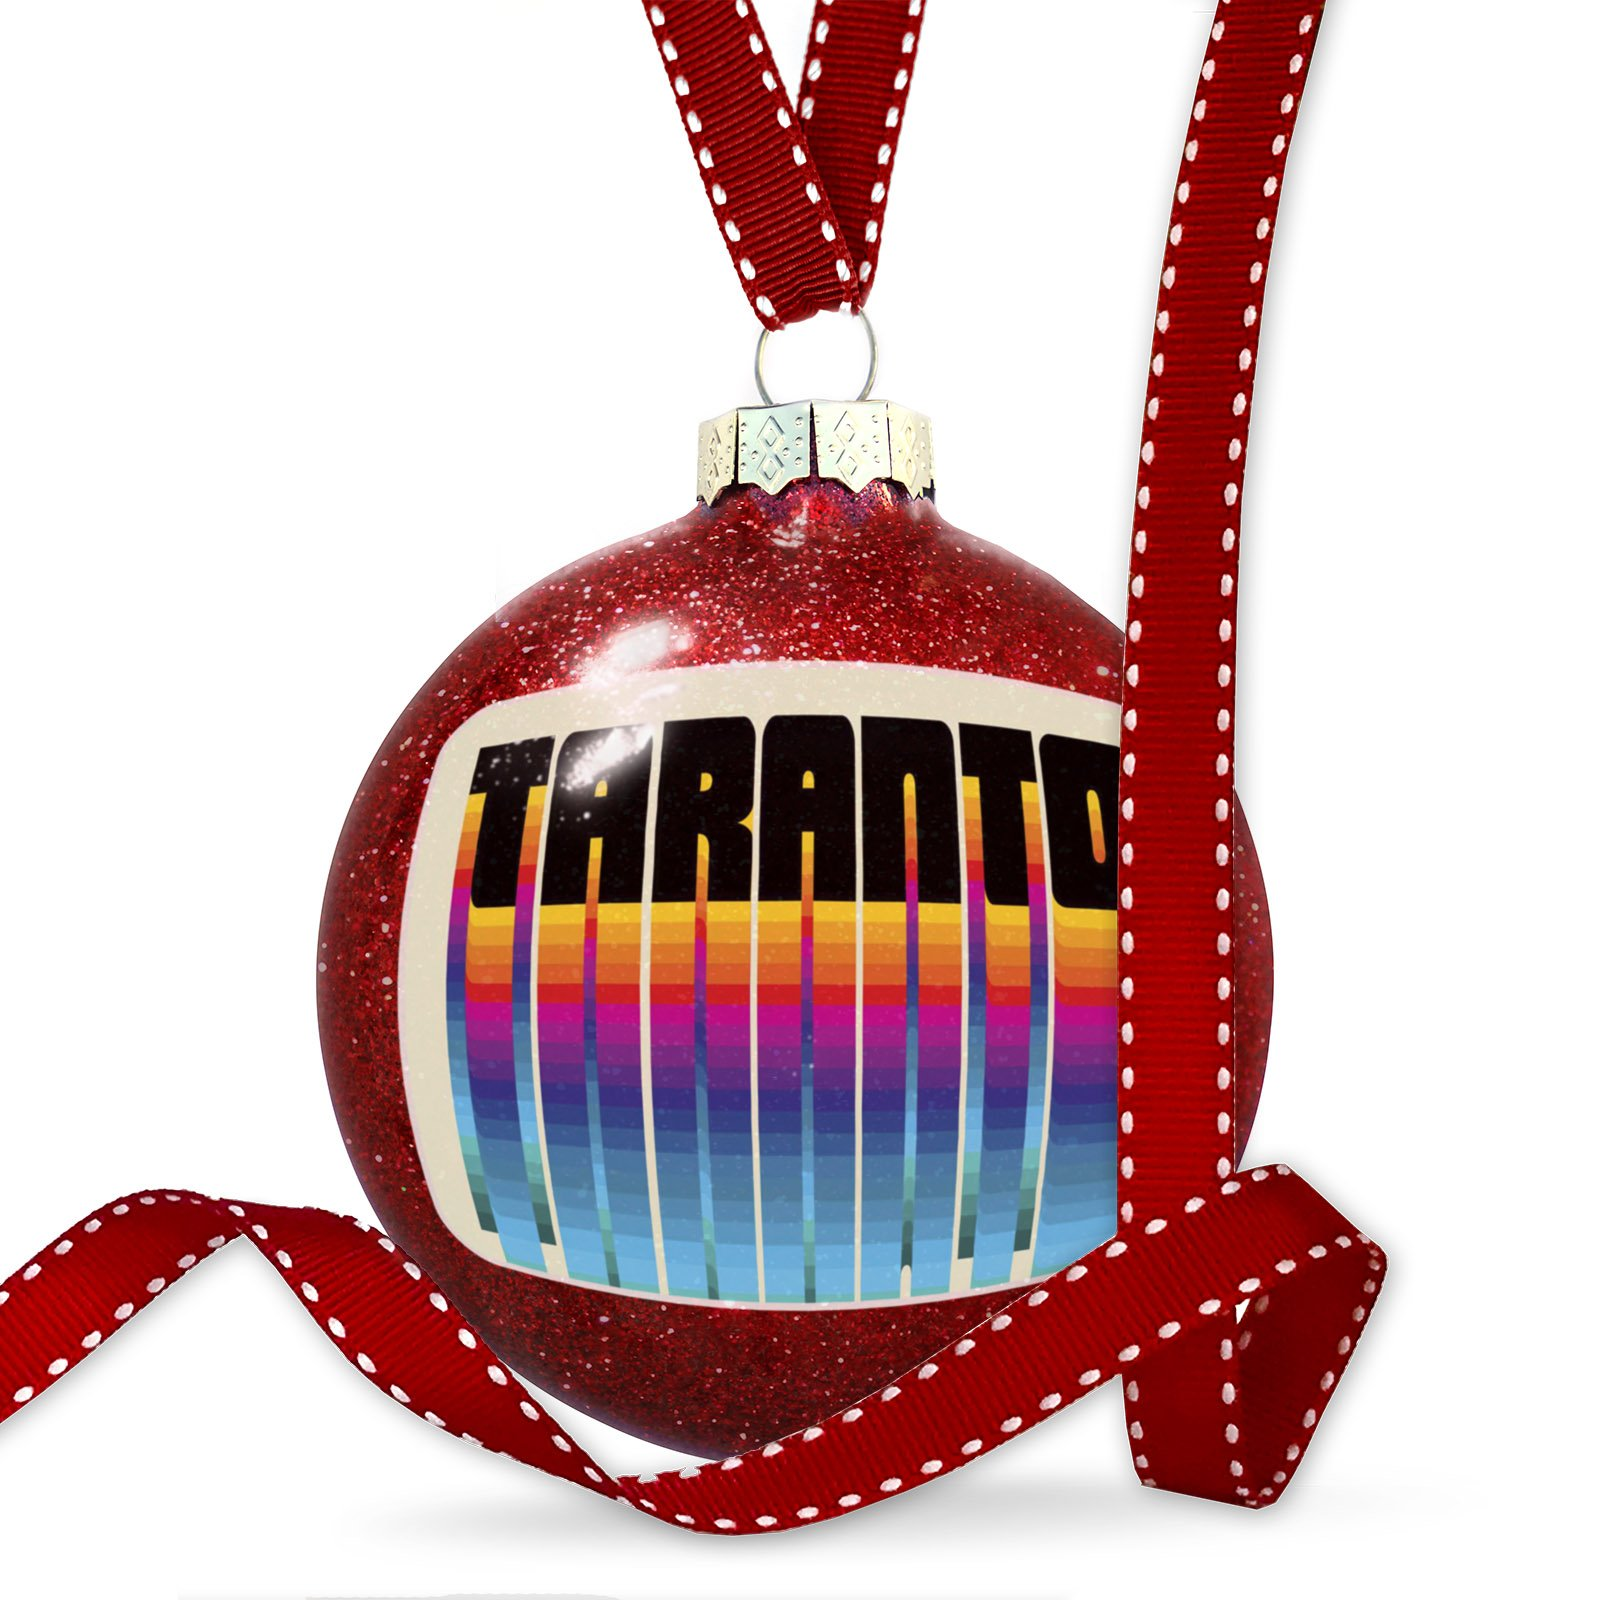 Christmas Decoration Retro Cites States Countries Taranto Ornament